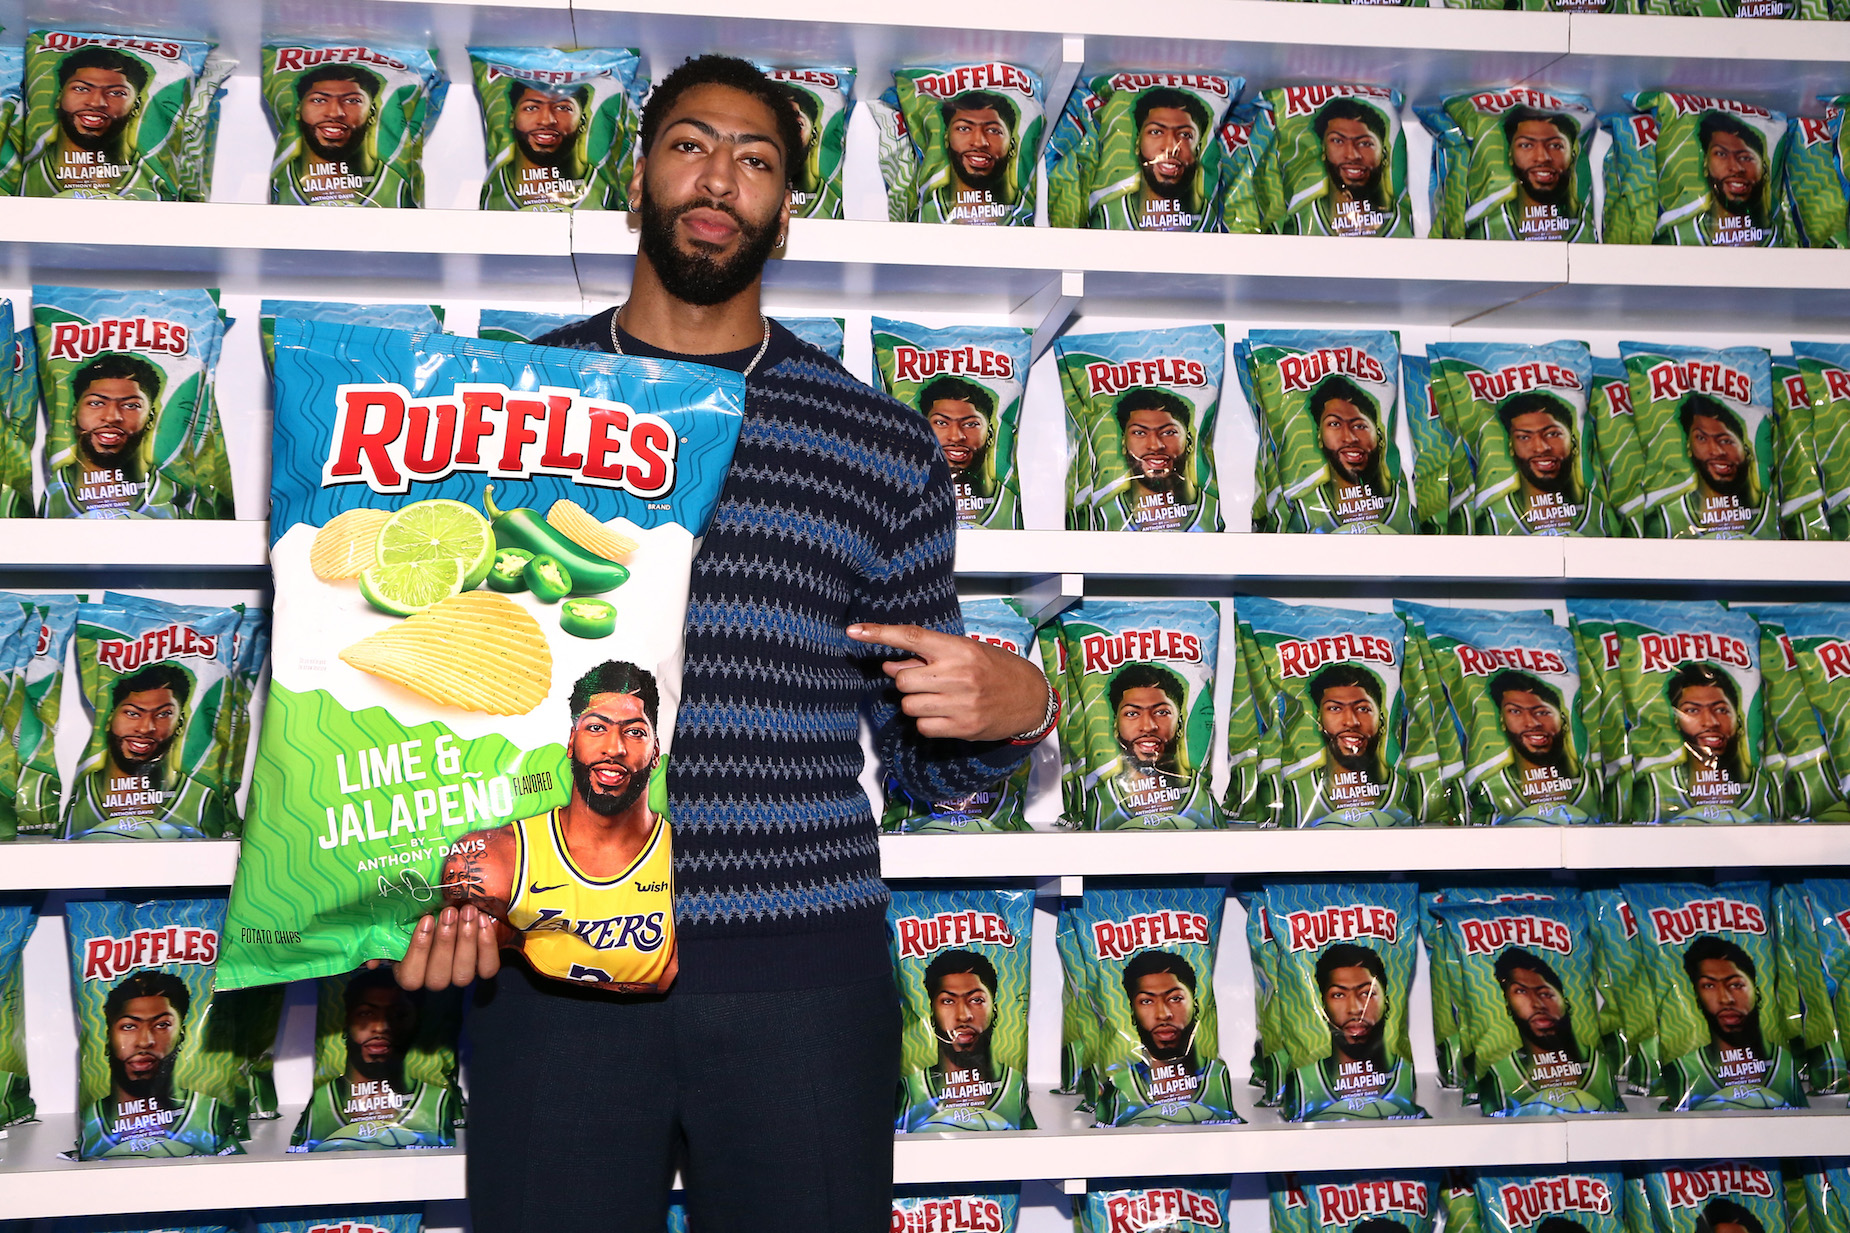 Shortly after joining the Lakers, Antony Davis signed a unique potato chip deal with Ruffles.